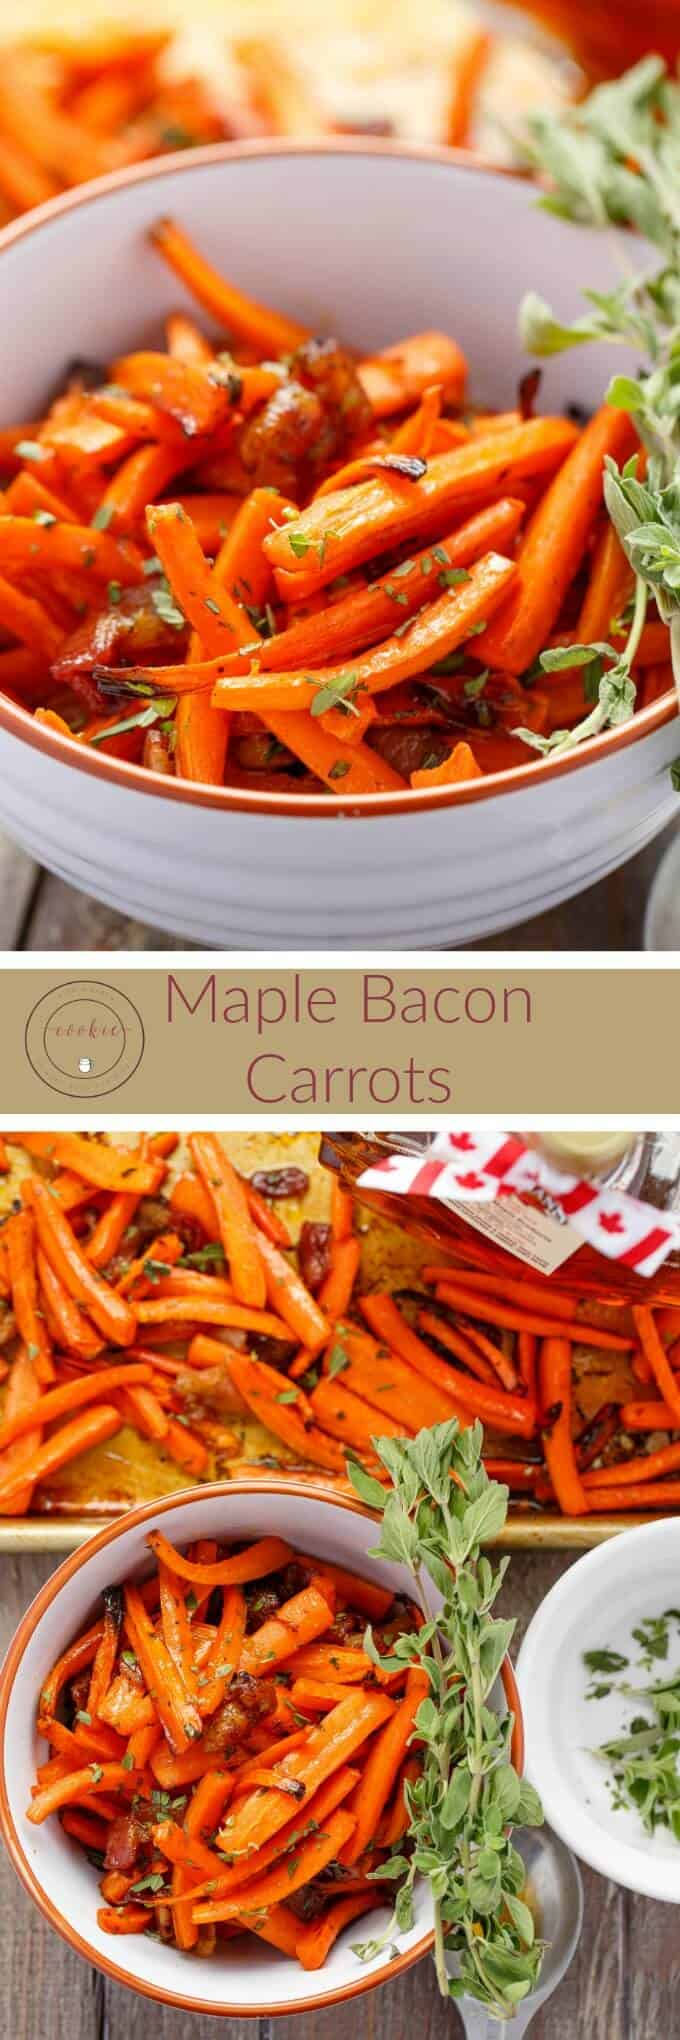 maple-bacon-carrots